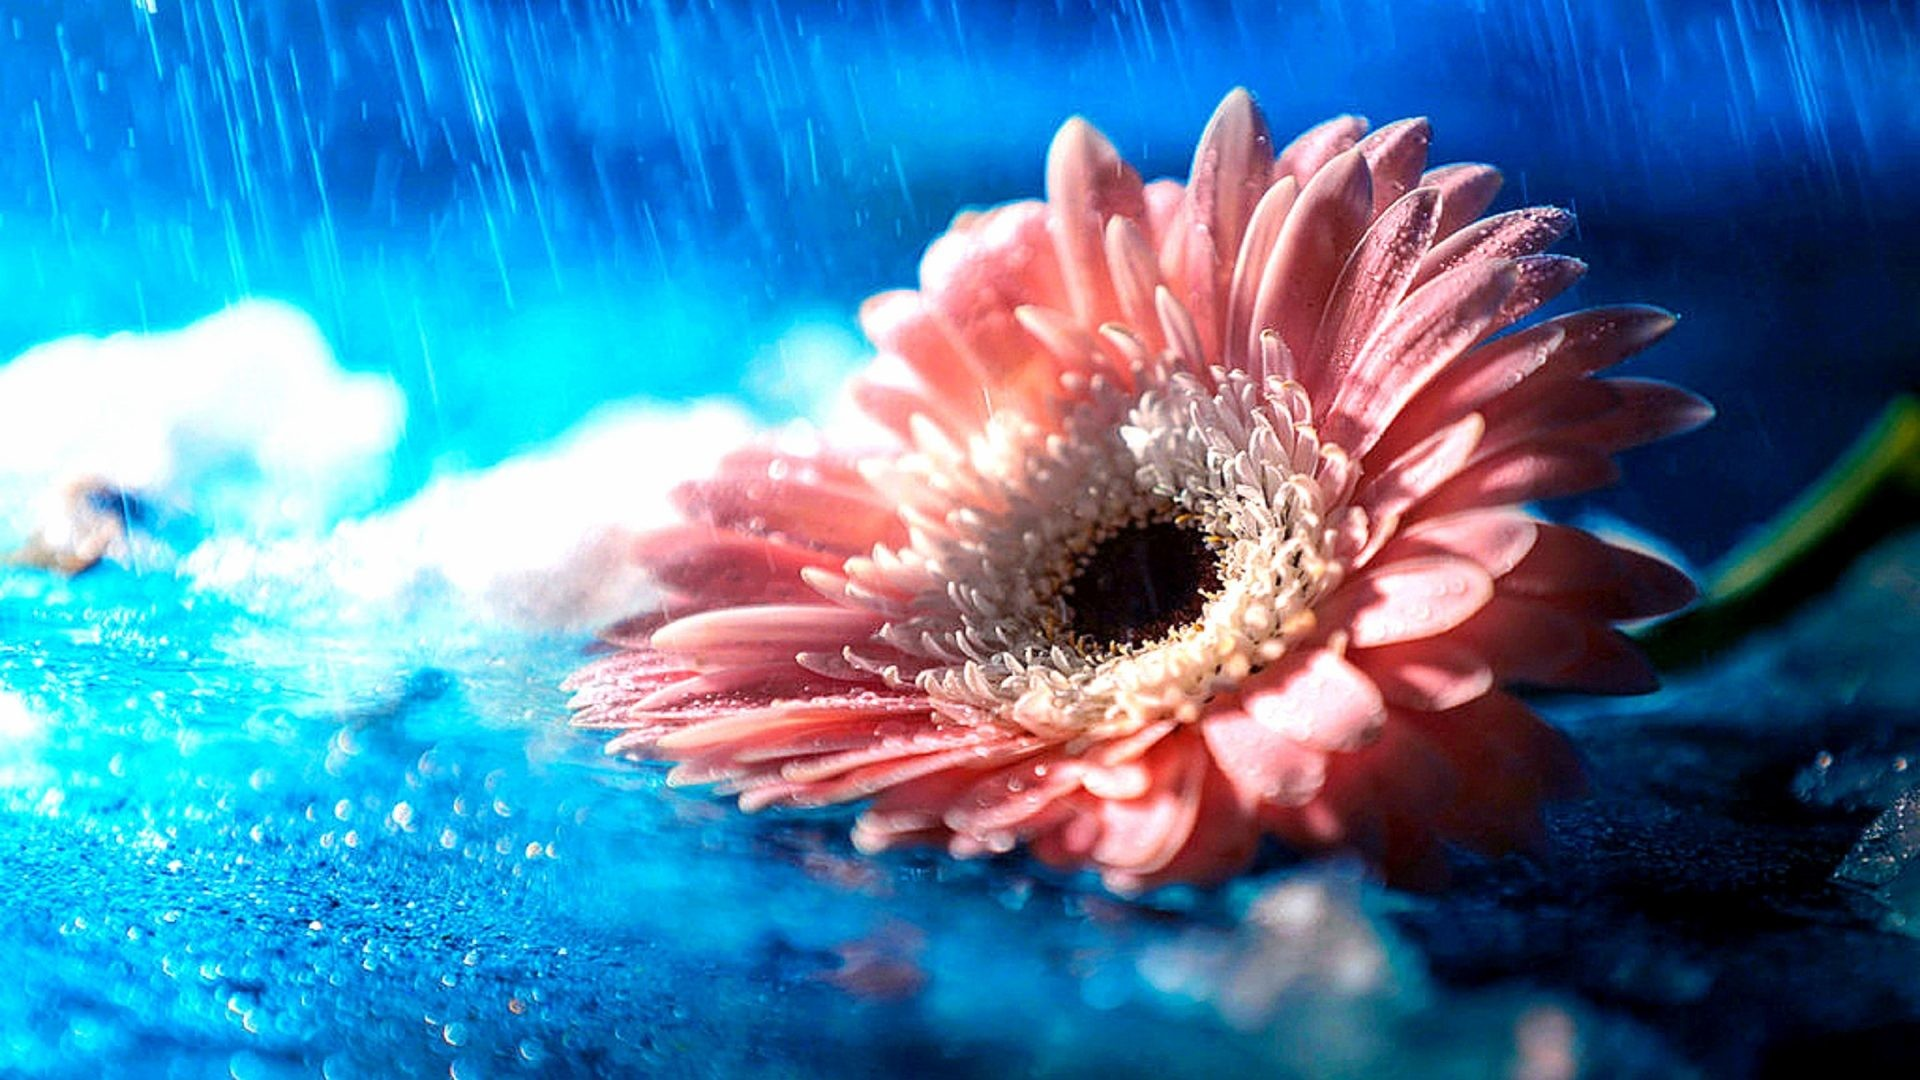 Love Pink Orchid Flower Romantic Wallpaper 24 3687 Hd: Pretty Color Wallpaper (46+ Images